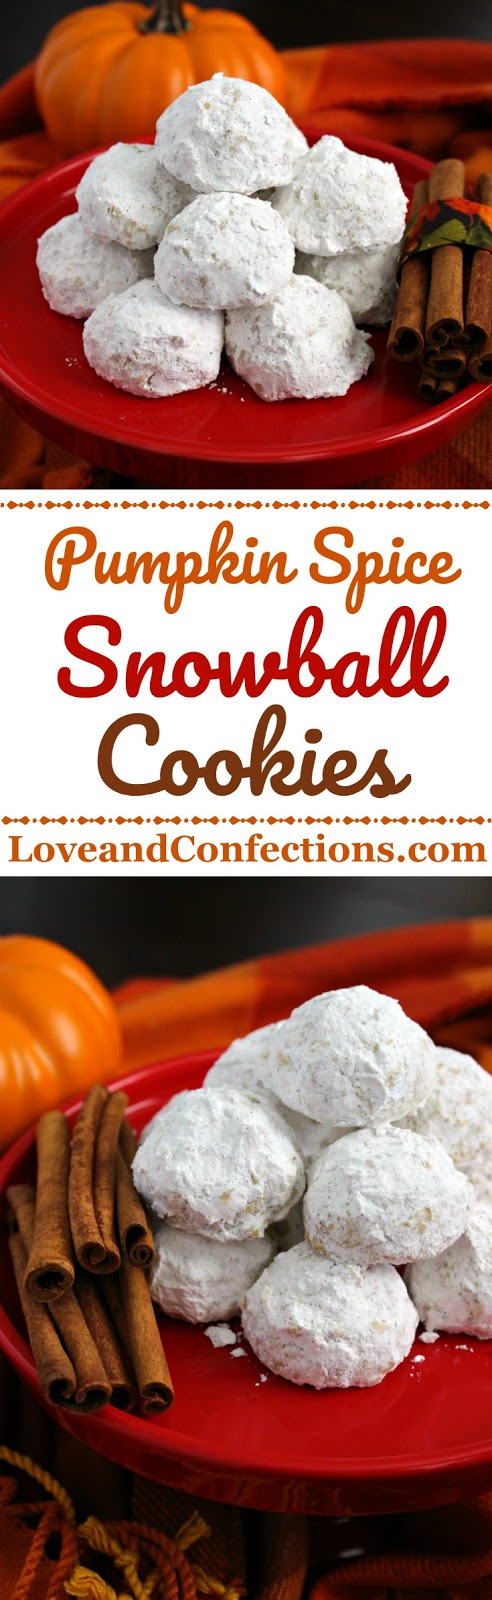 Pumpkin Pie Spice Snowball Cookies from LoveandConfections.com #PumpkinWeek